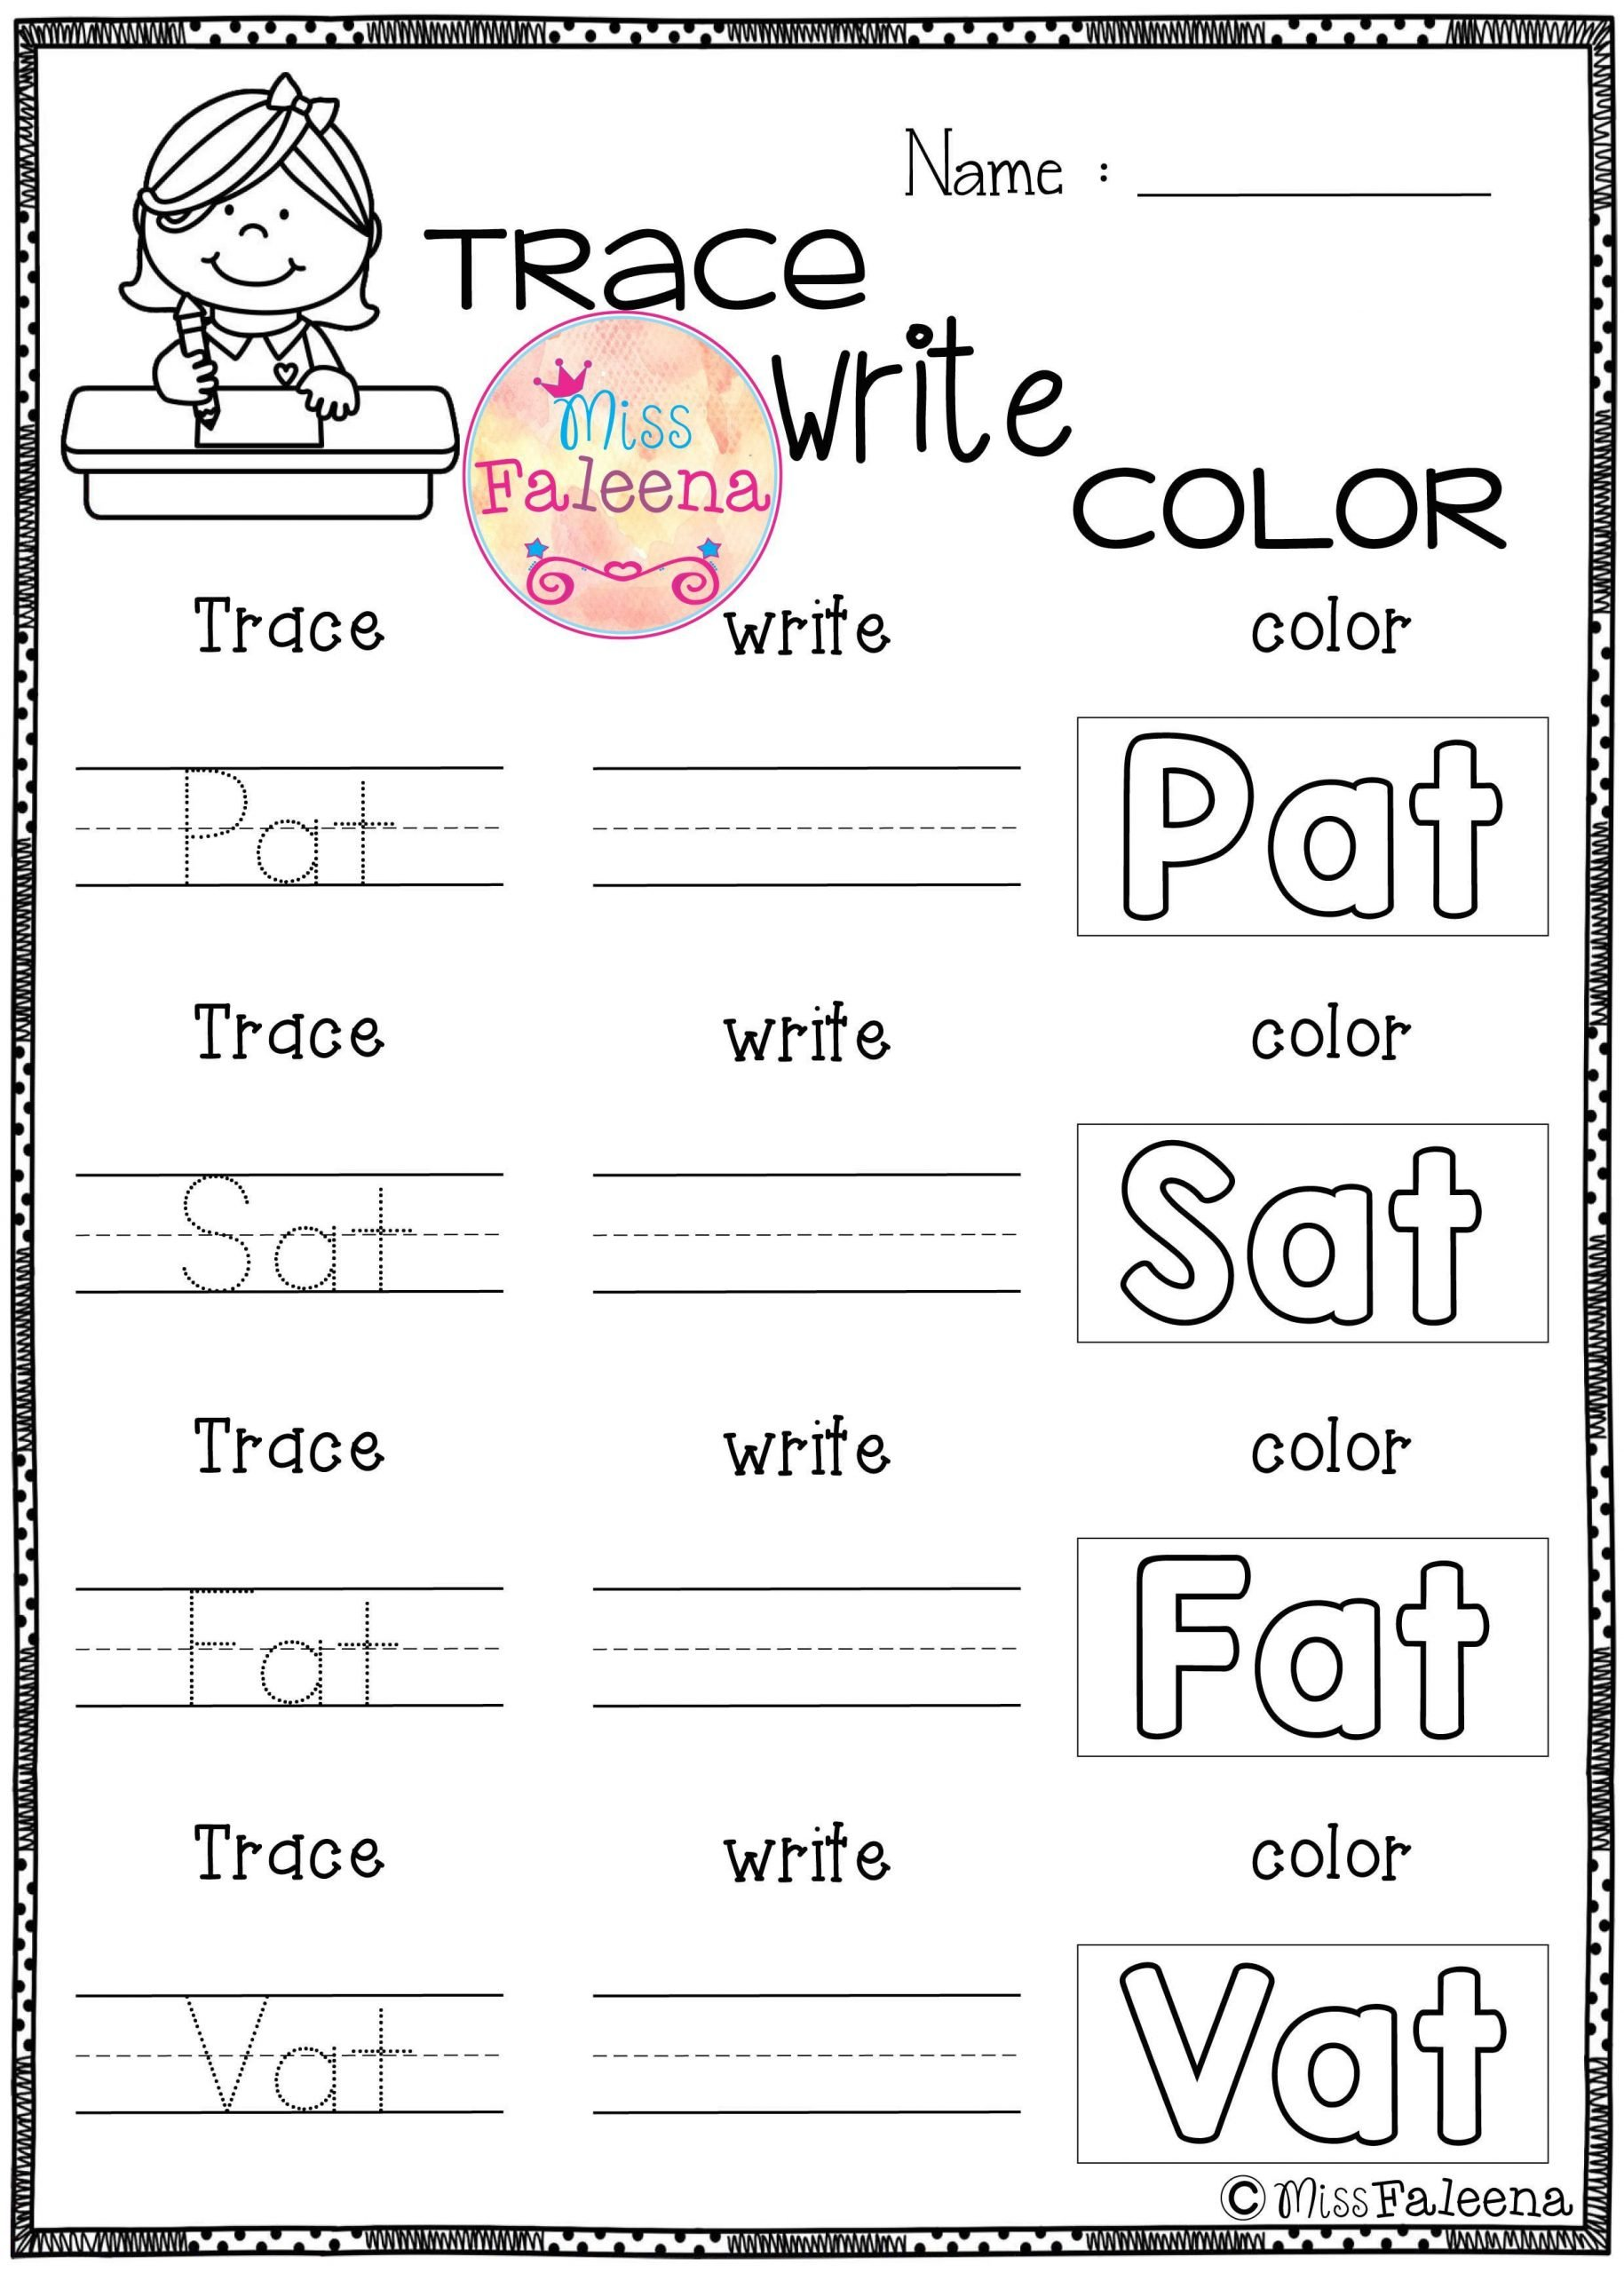 Ccvc Words Worksheets Kindergarten Cvc Word Short A Exercise